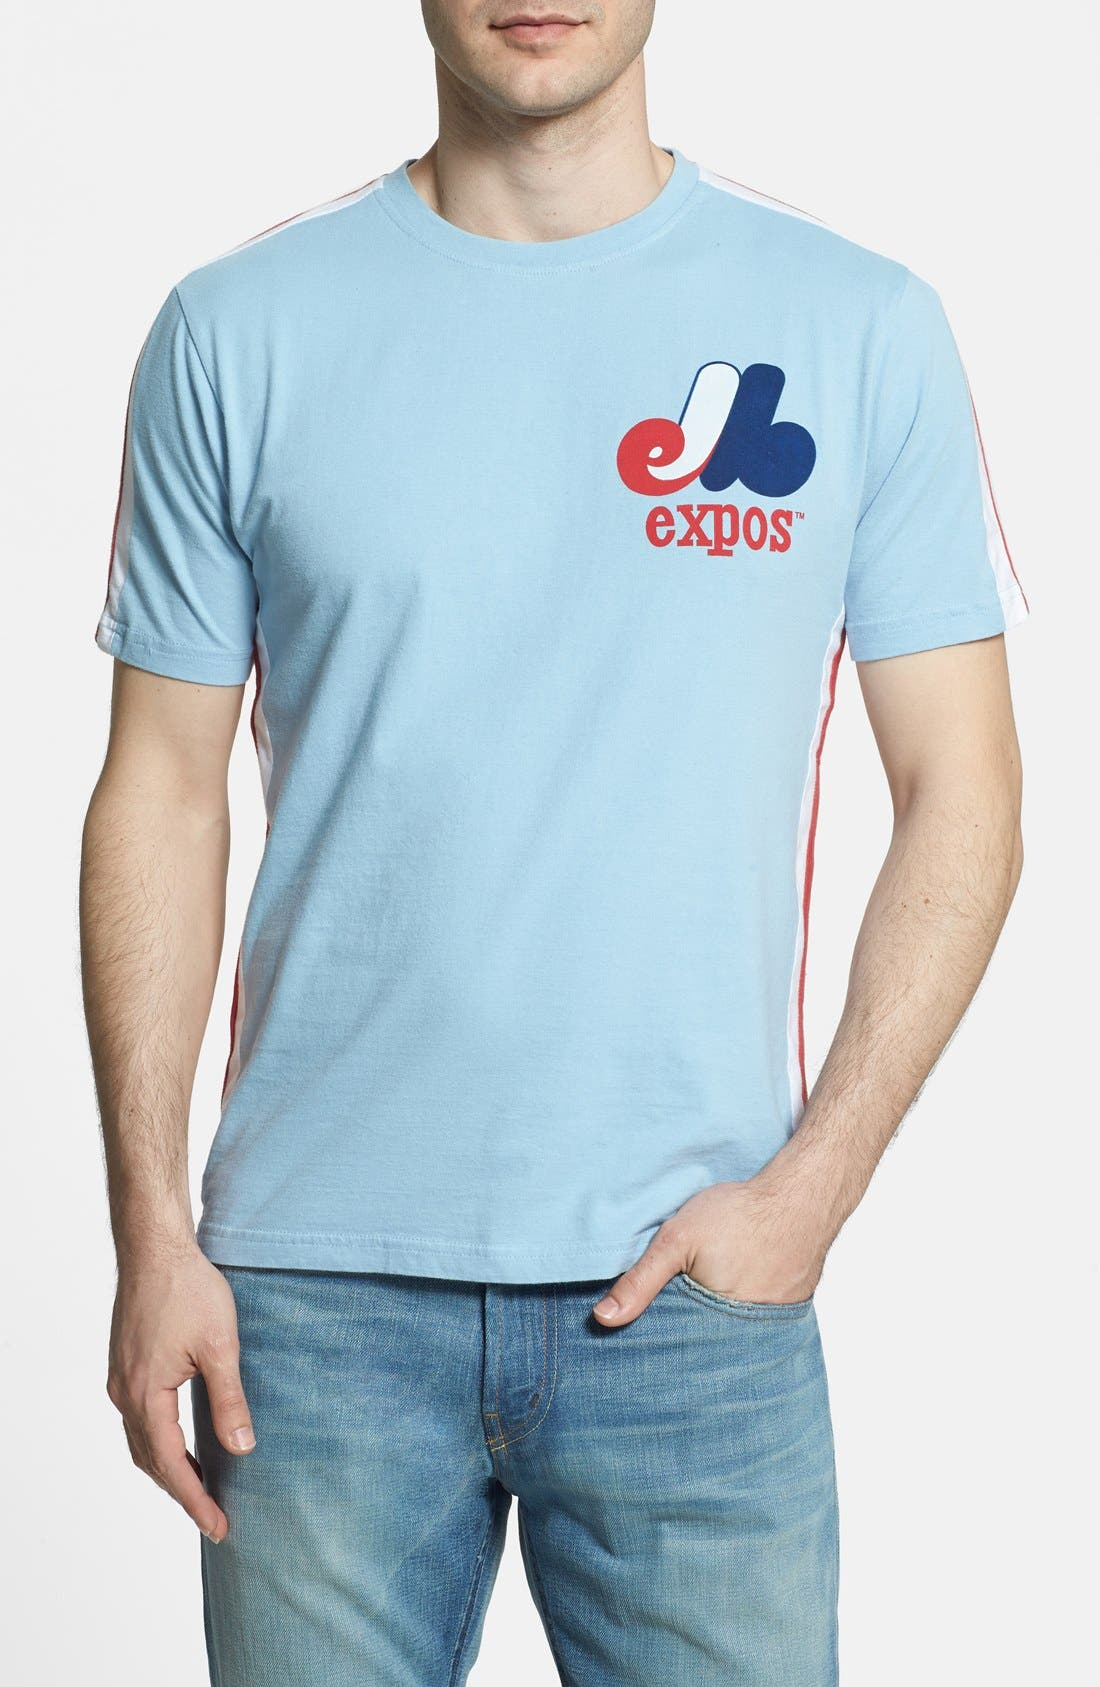 Alternate Image 1 Selected - Red Jacket 'Expos - Remote Control' T-Shirt (Men)